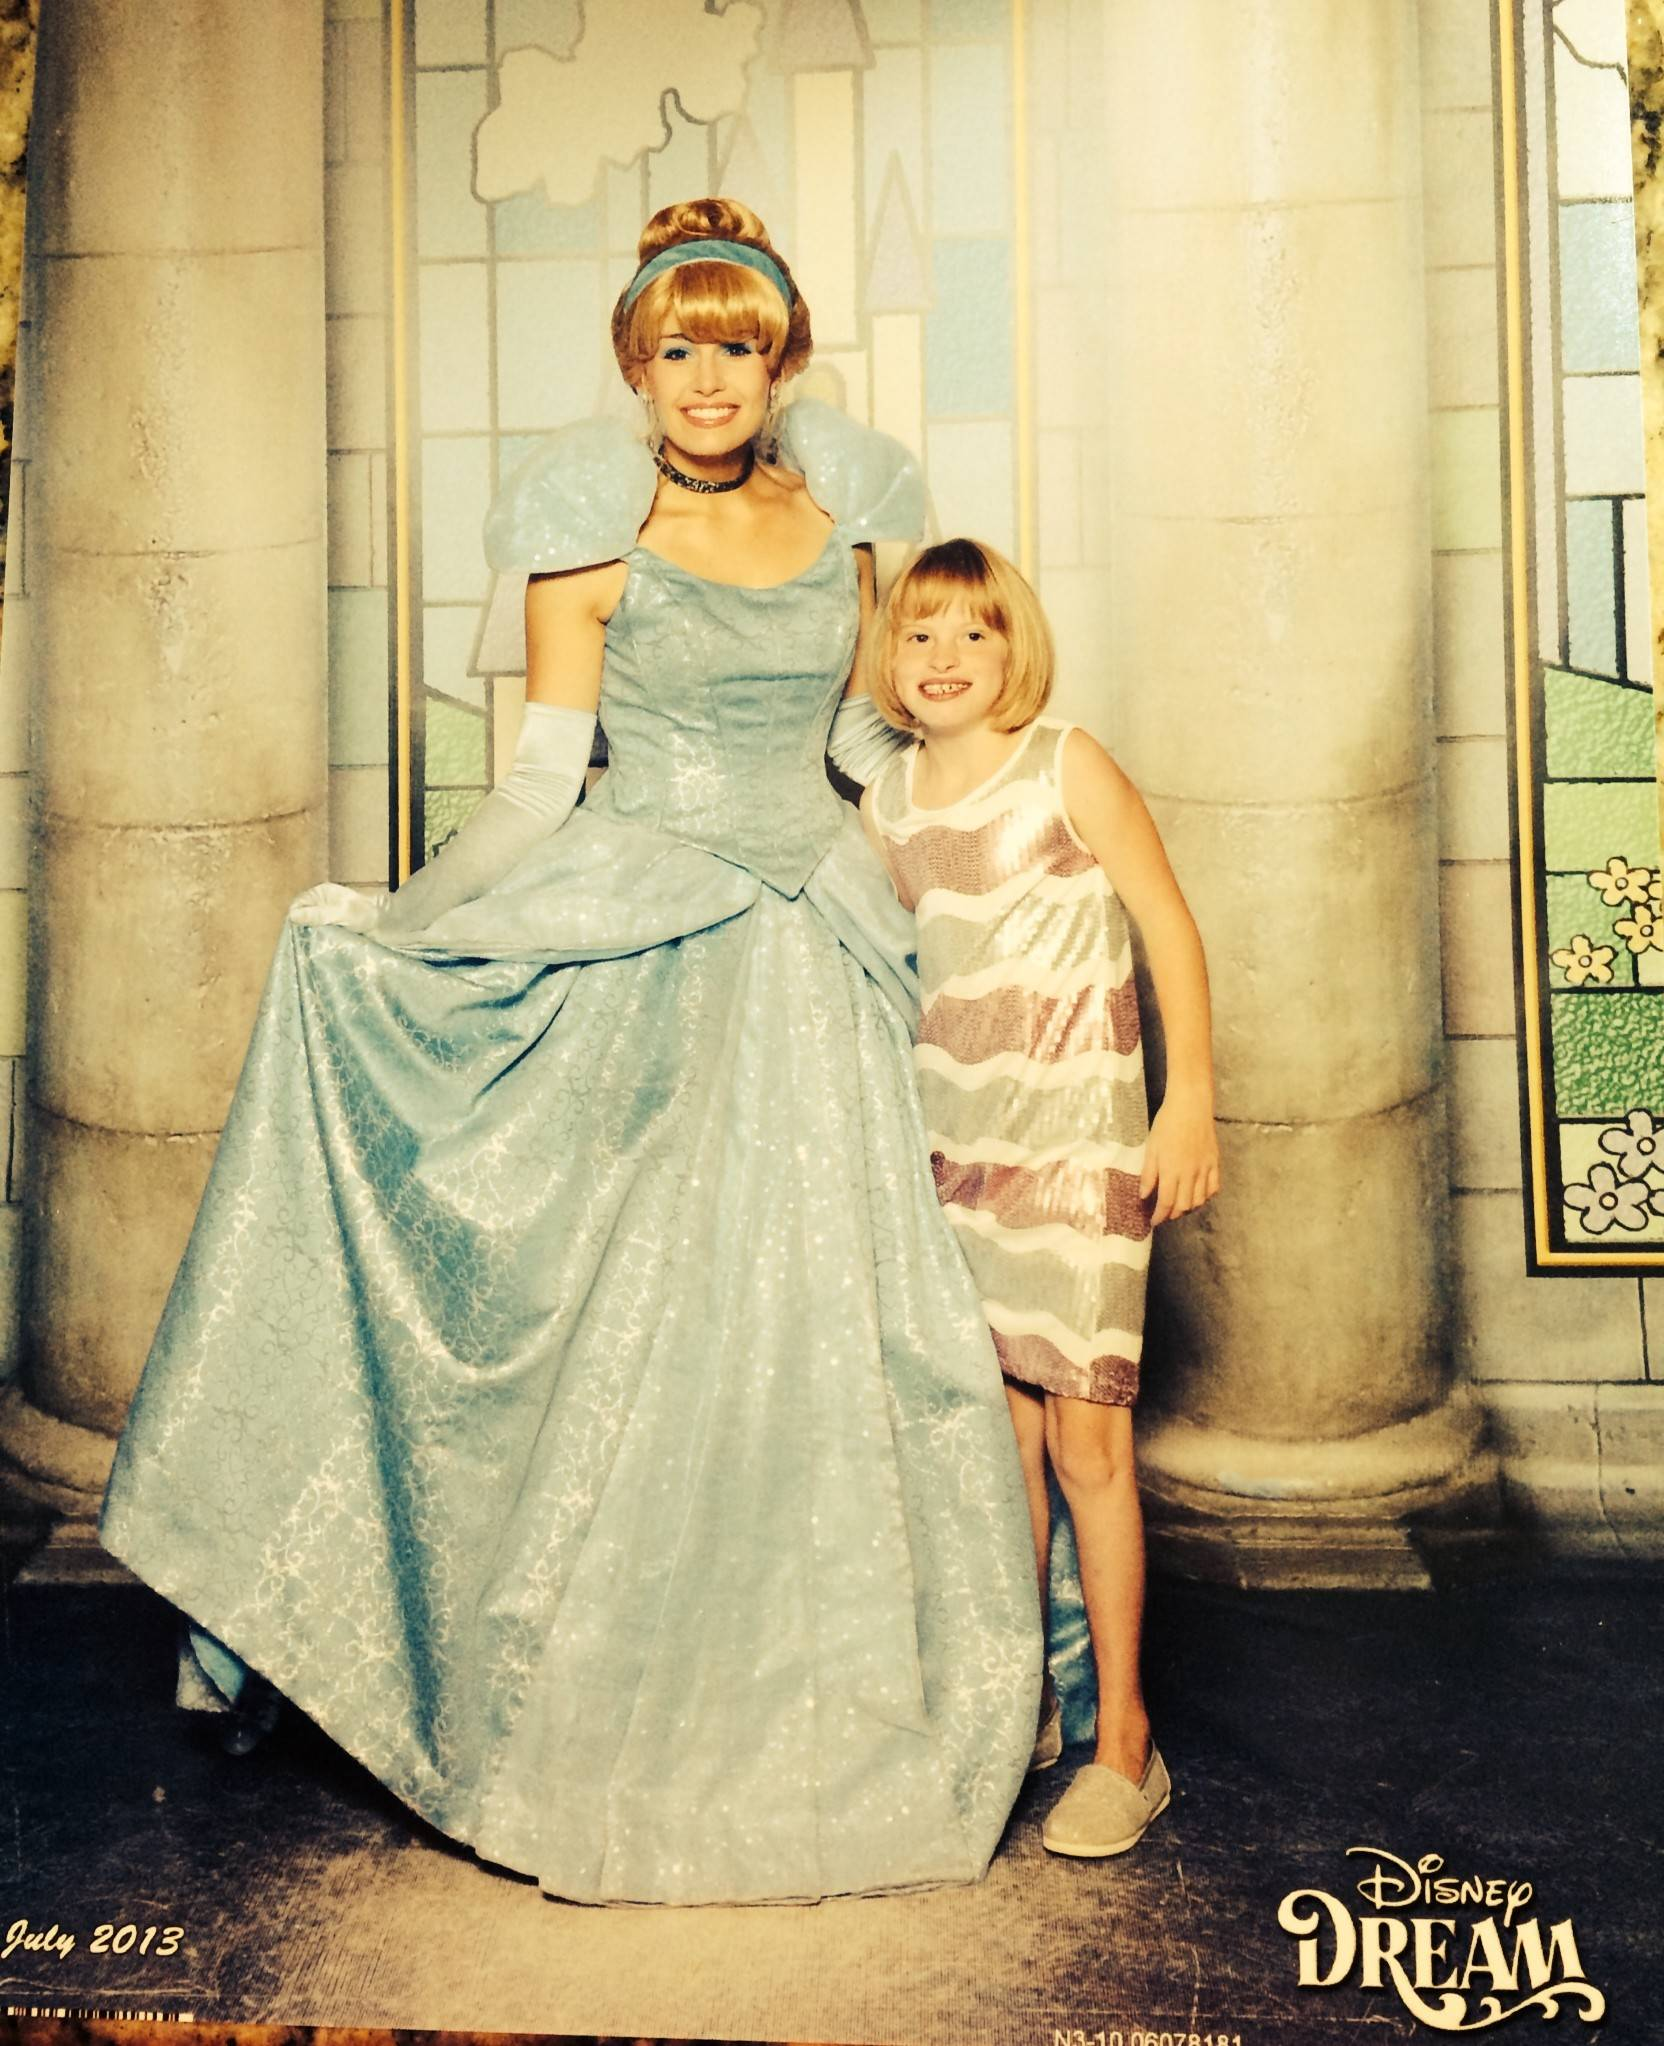 Grace Belmonte poses with Cinderella while on a Disney Cruise, part of her wish from the Make-A-Wish Foundation.